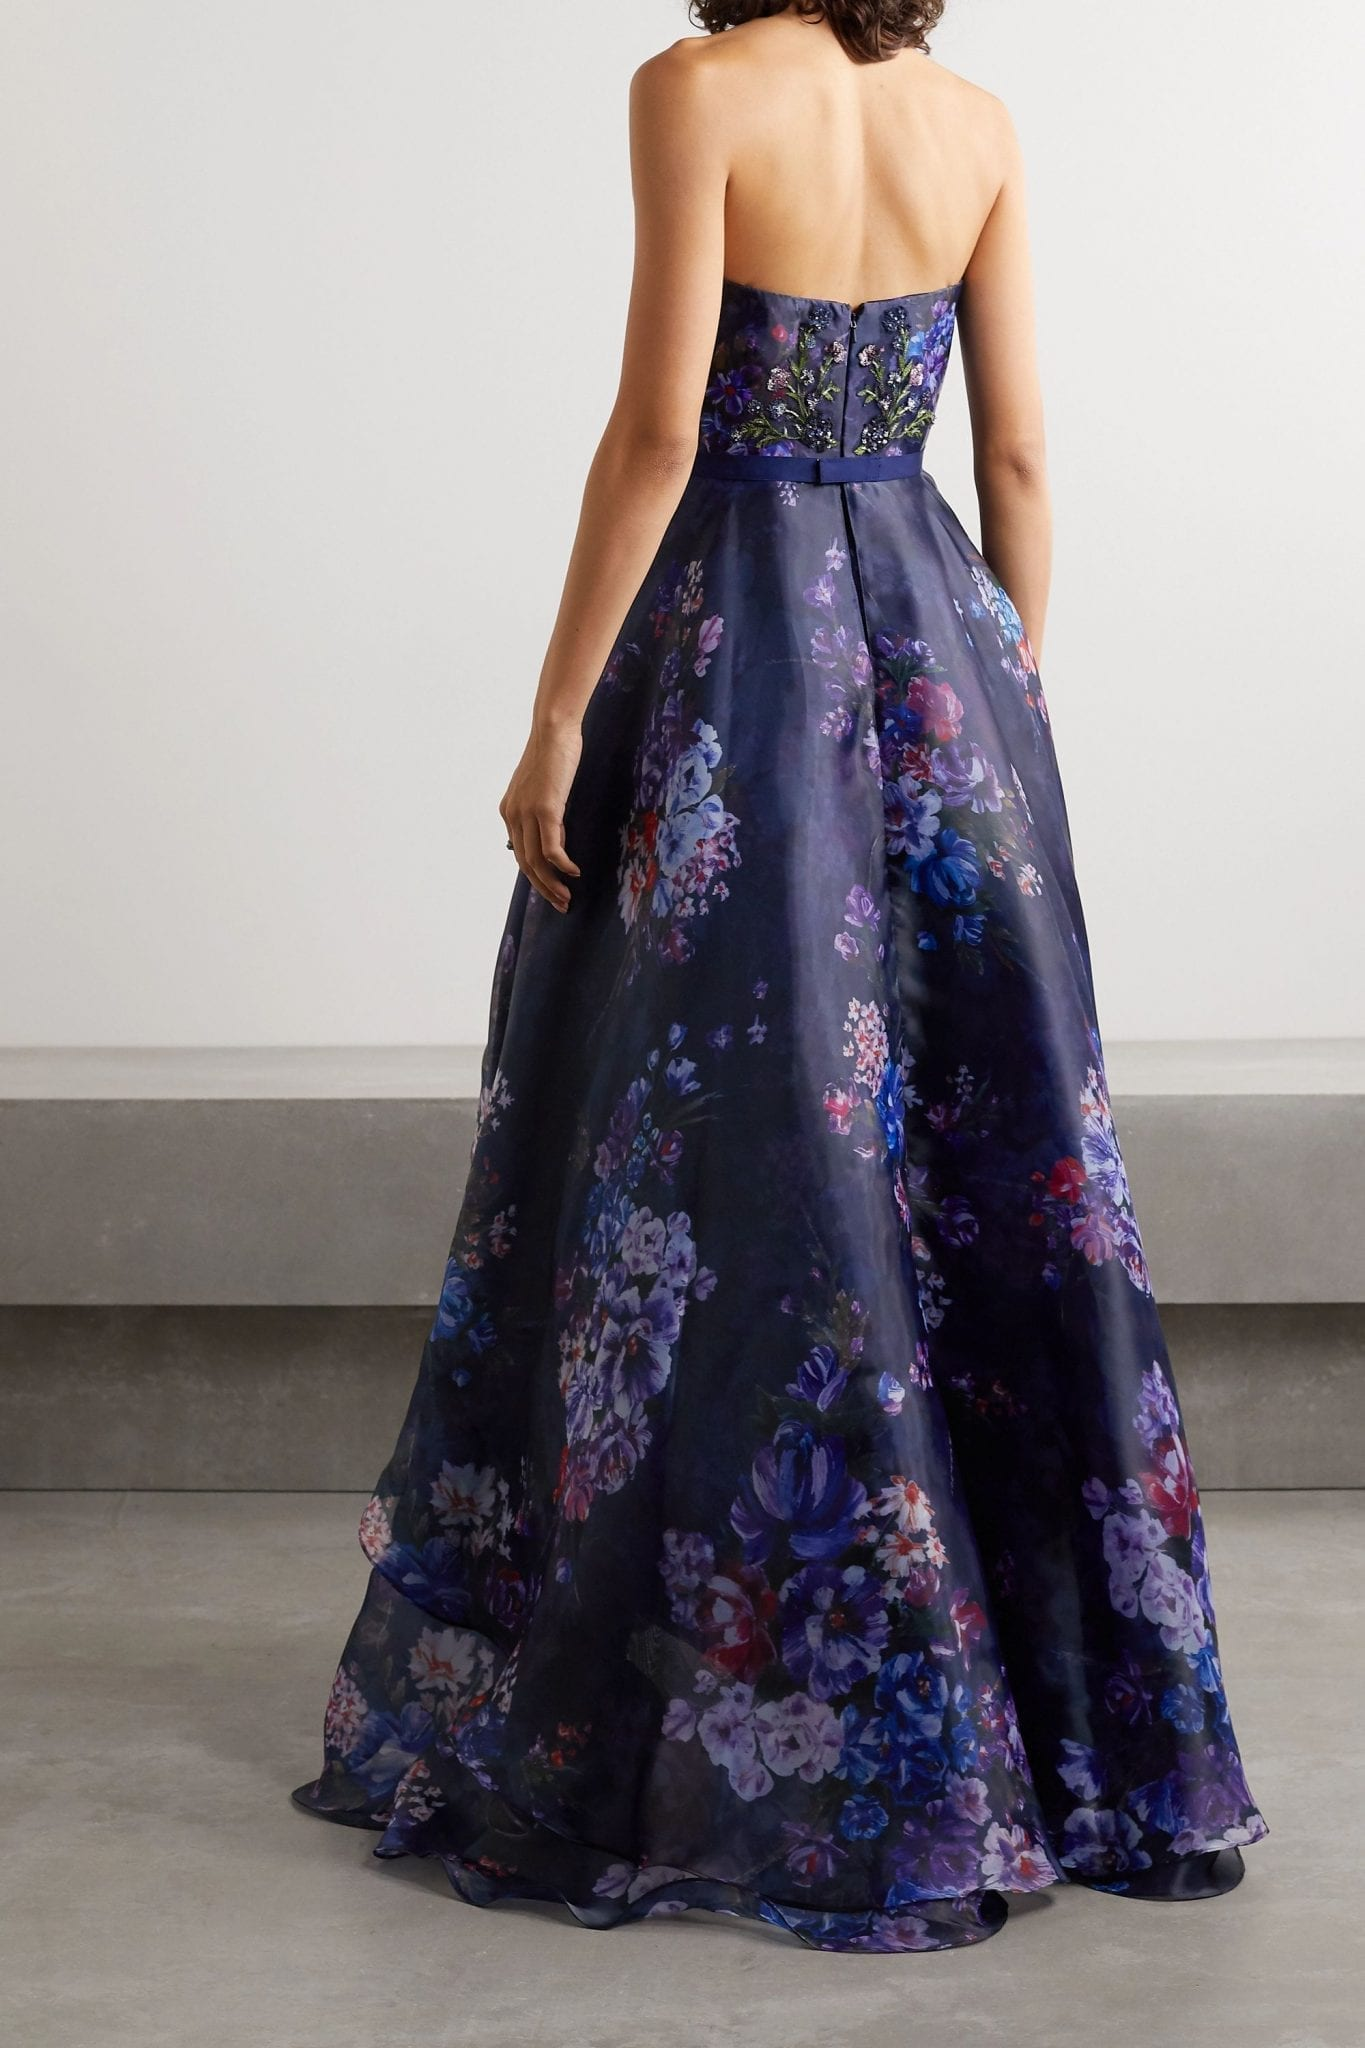 MARCHESA NOTTE Strapless Embellished Embroidered Floral-print Chiffon Gown